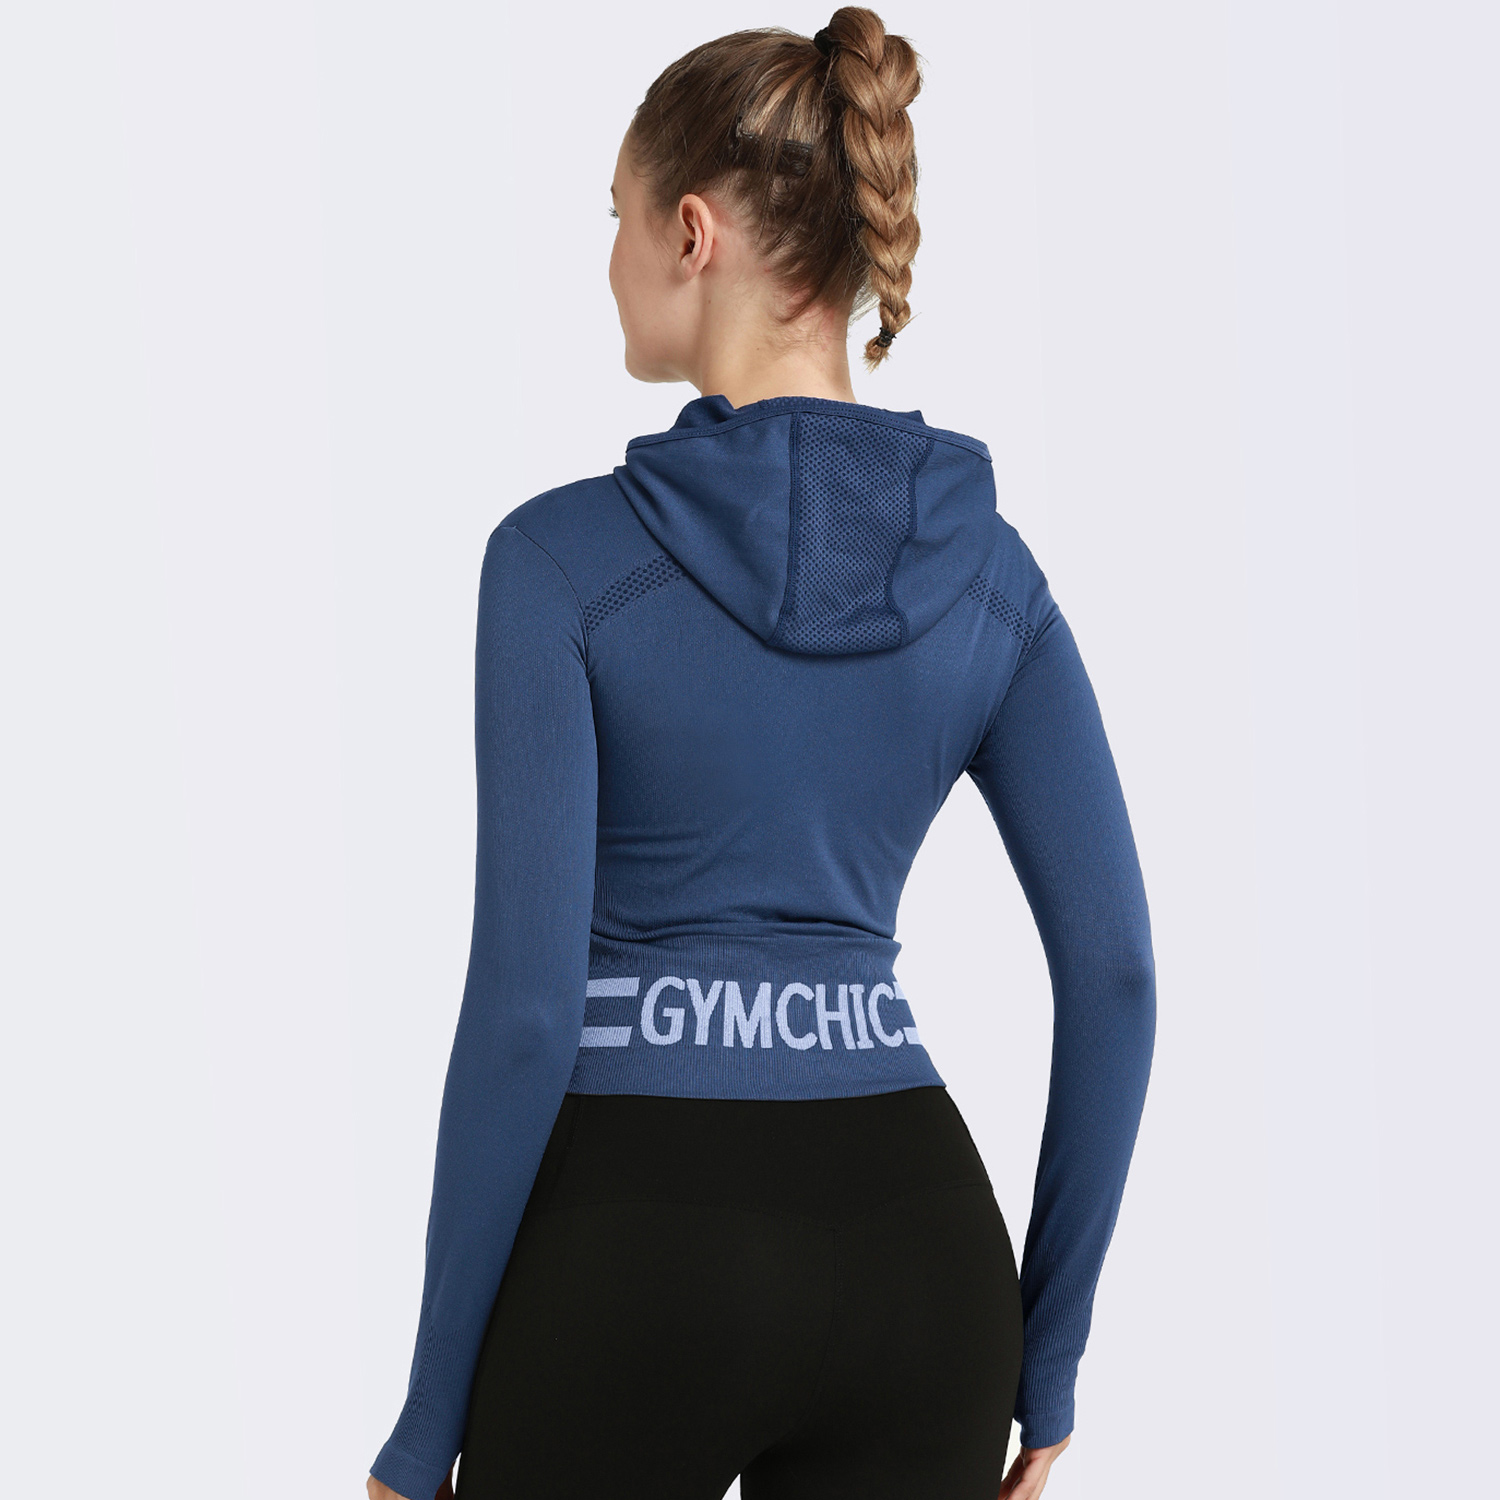 Sports Jacket for Women Womens Clothing Jackets & Hoodies